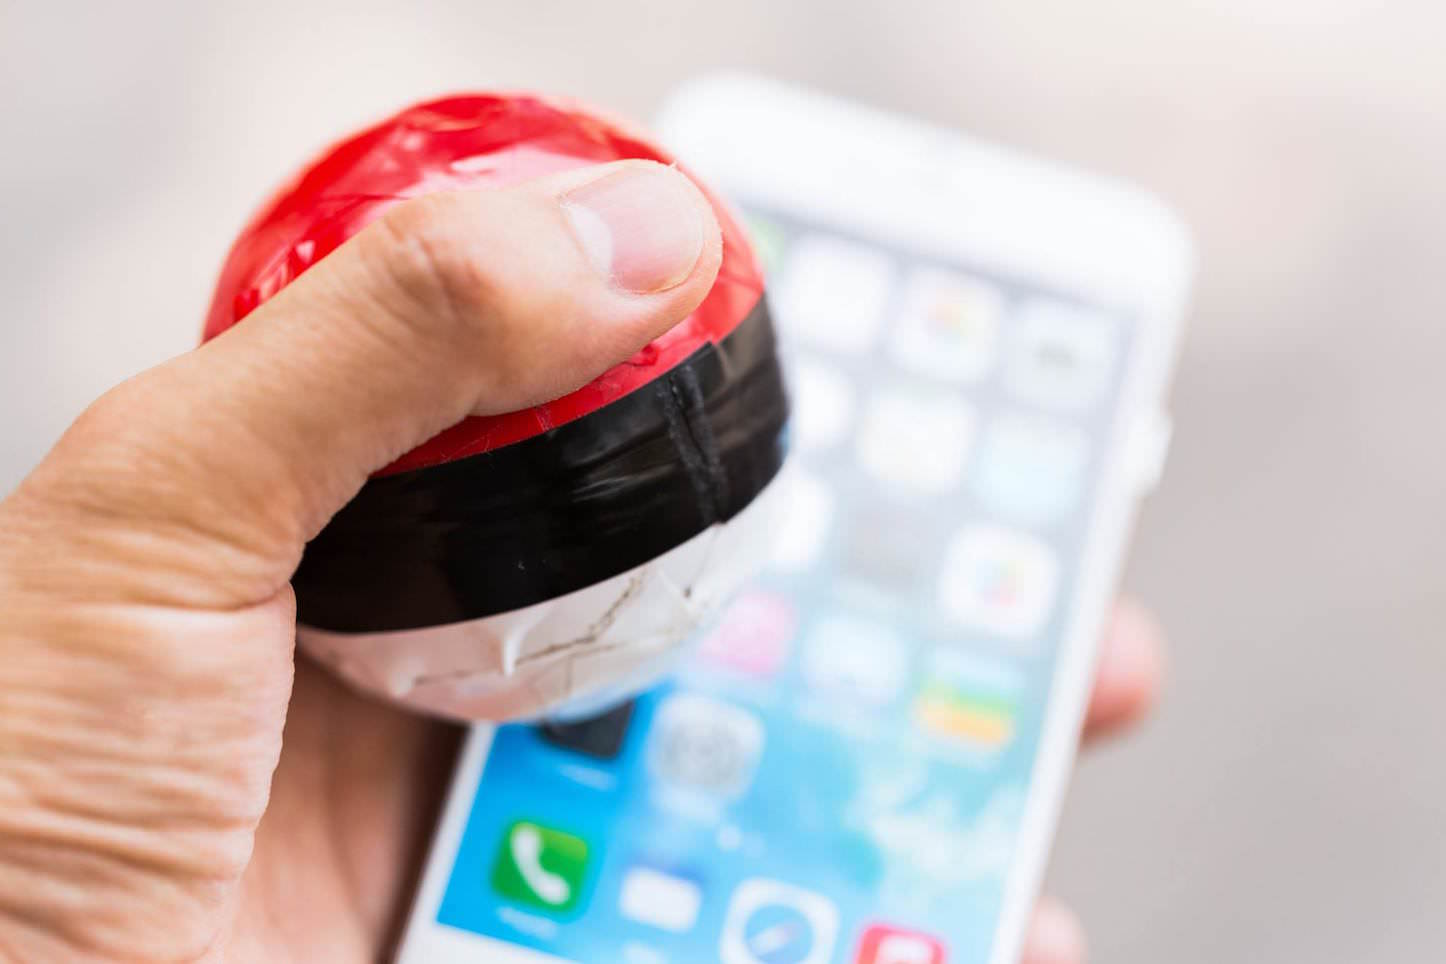 Pokemon ball and iphone